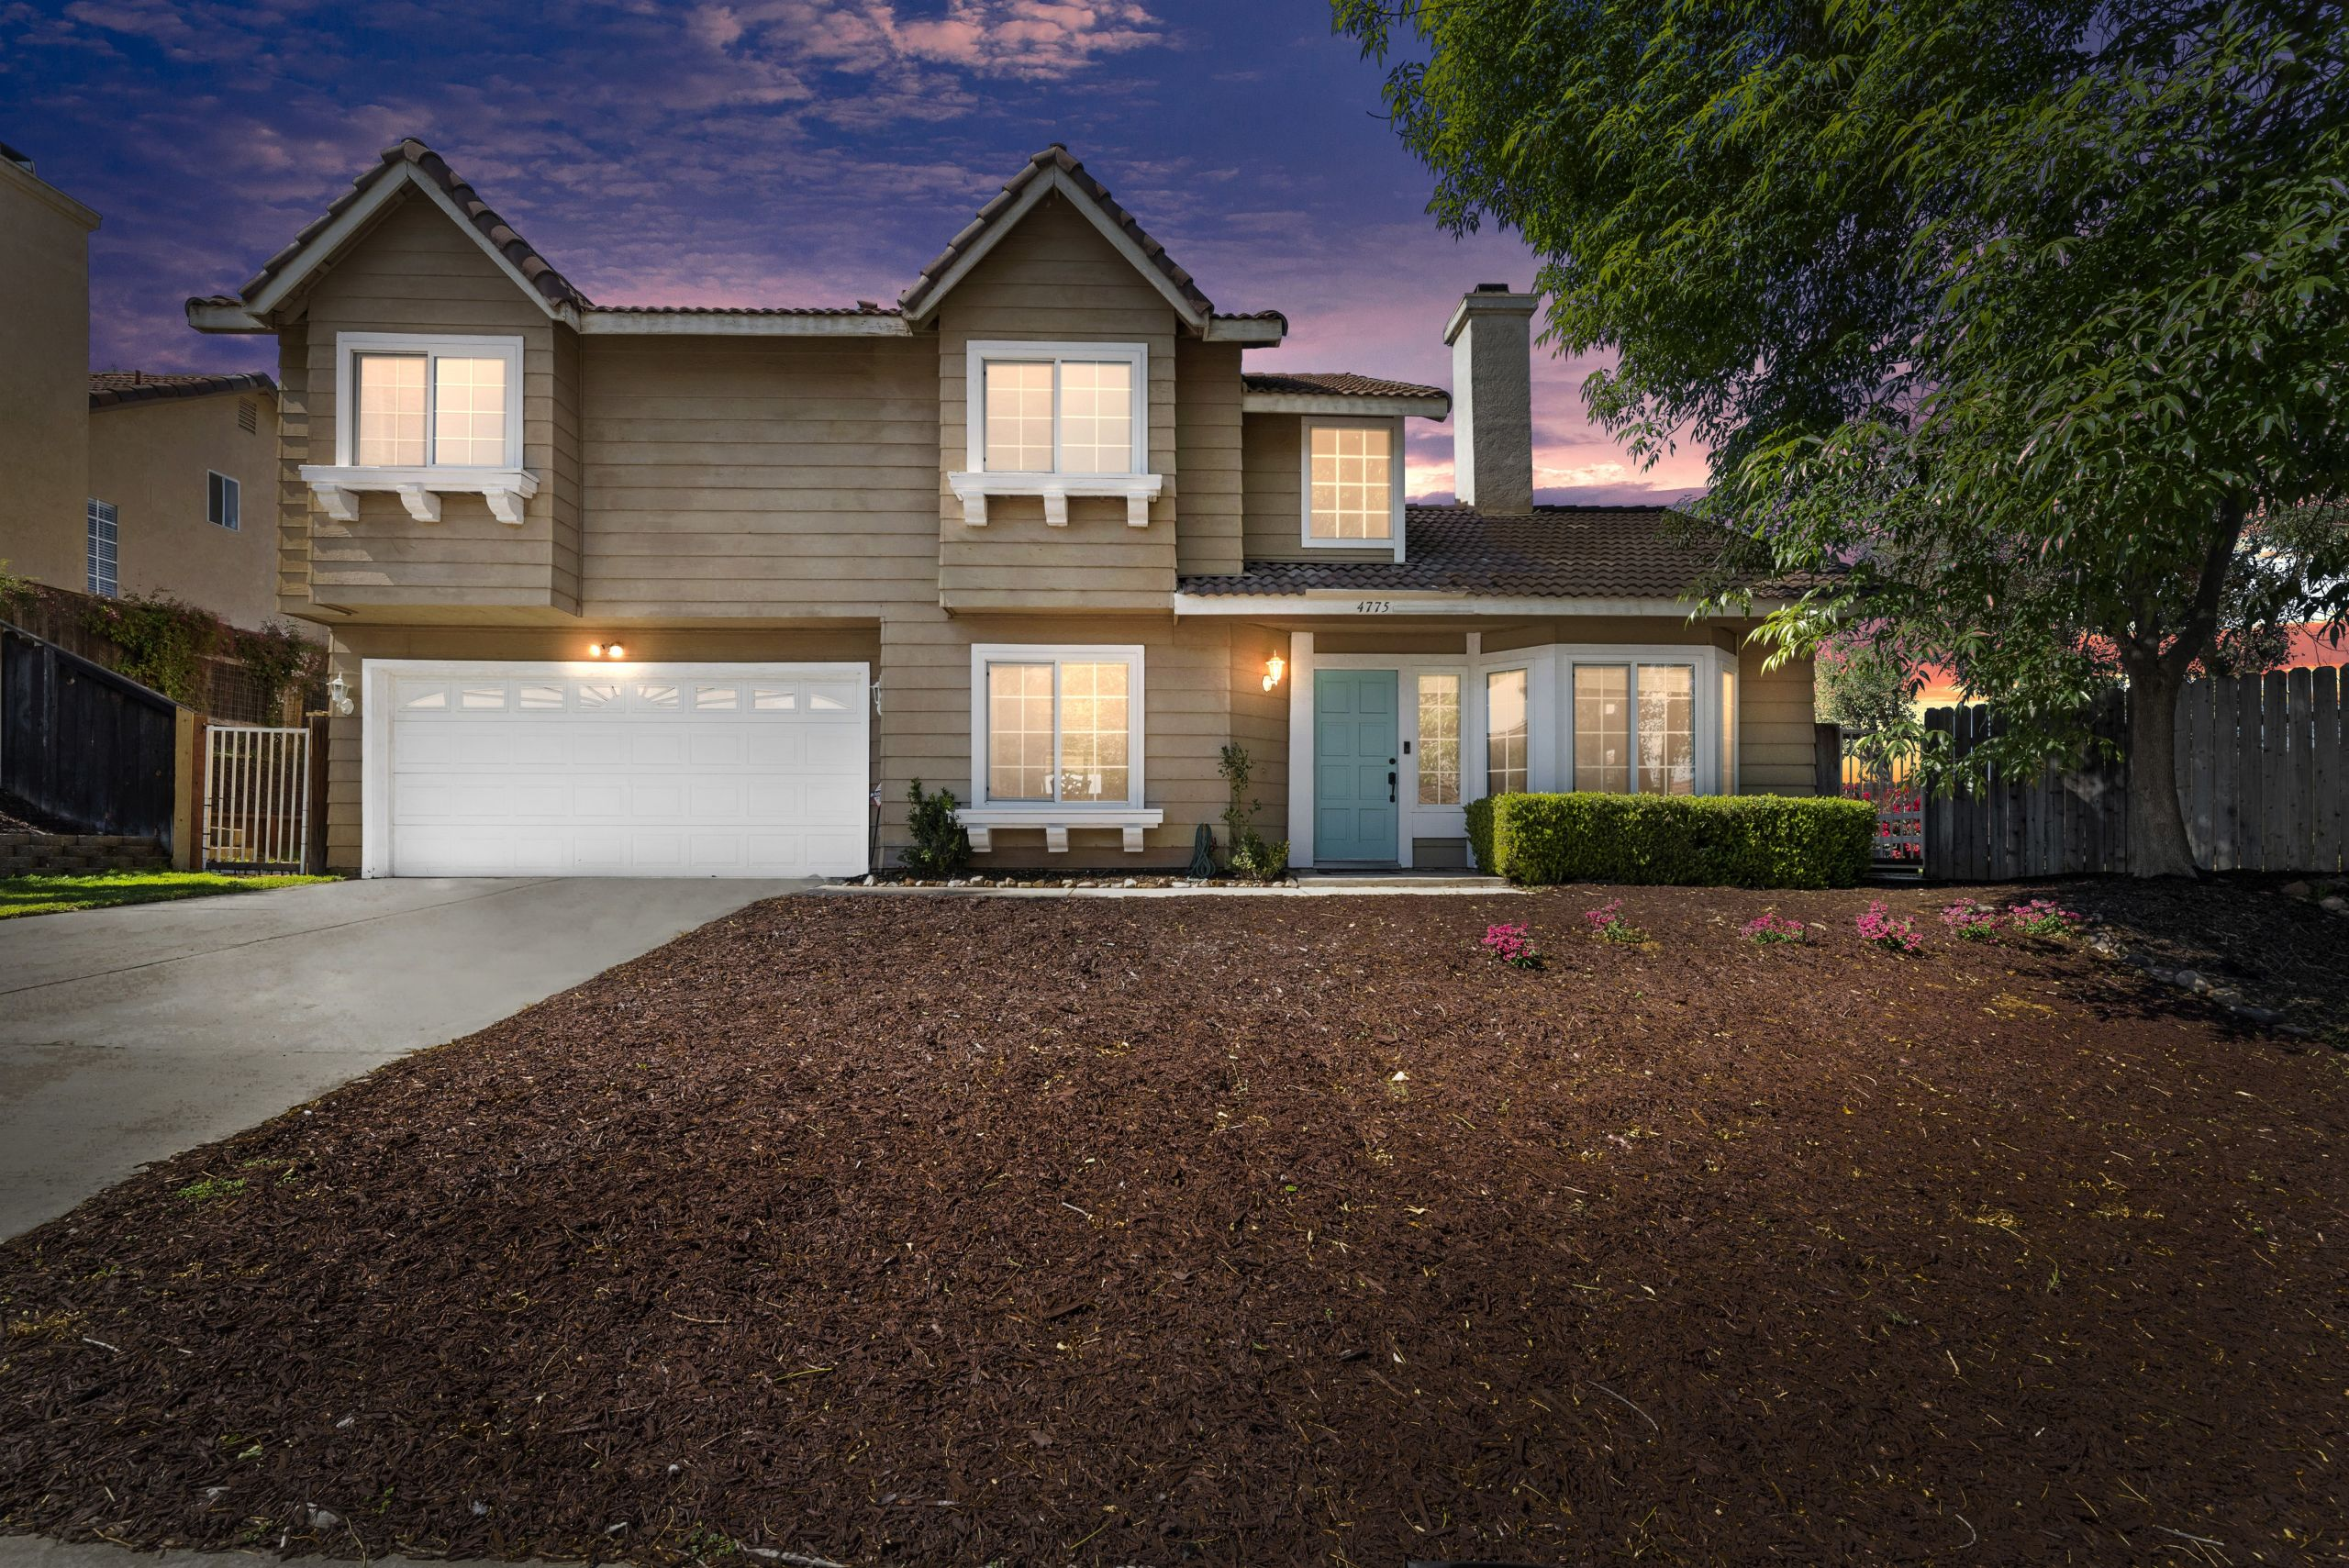 4775 Mount Abbott St, Jurupa Valley